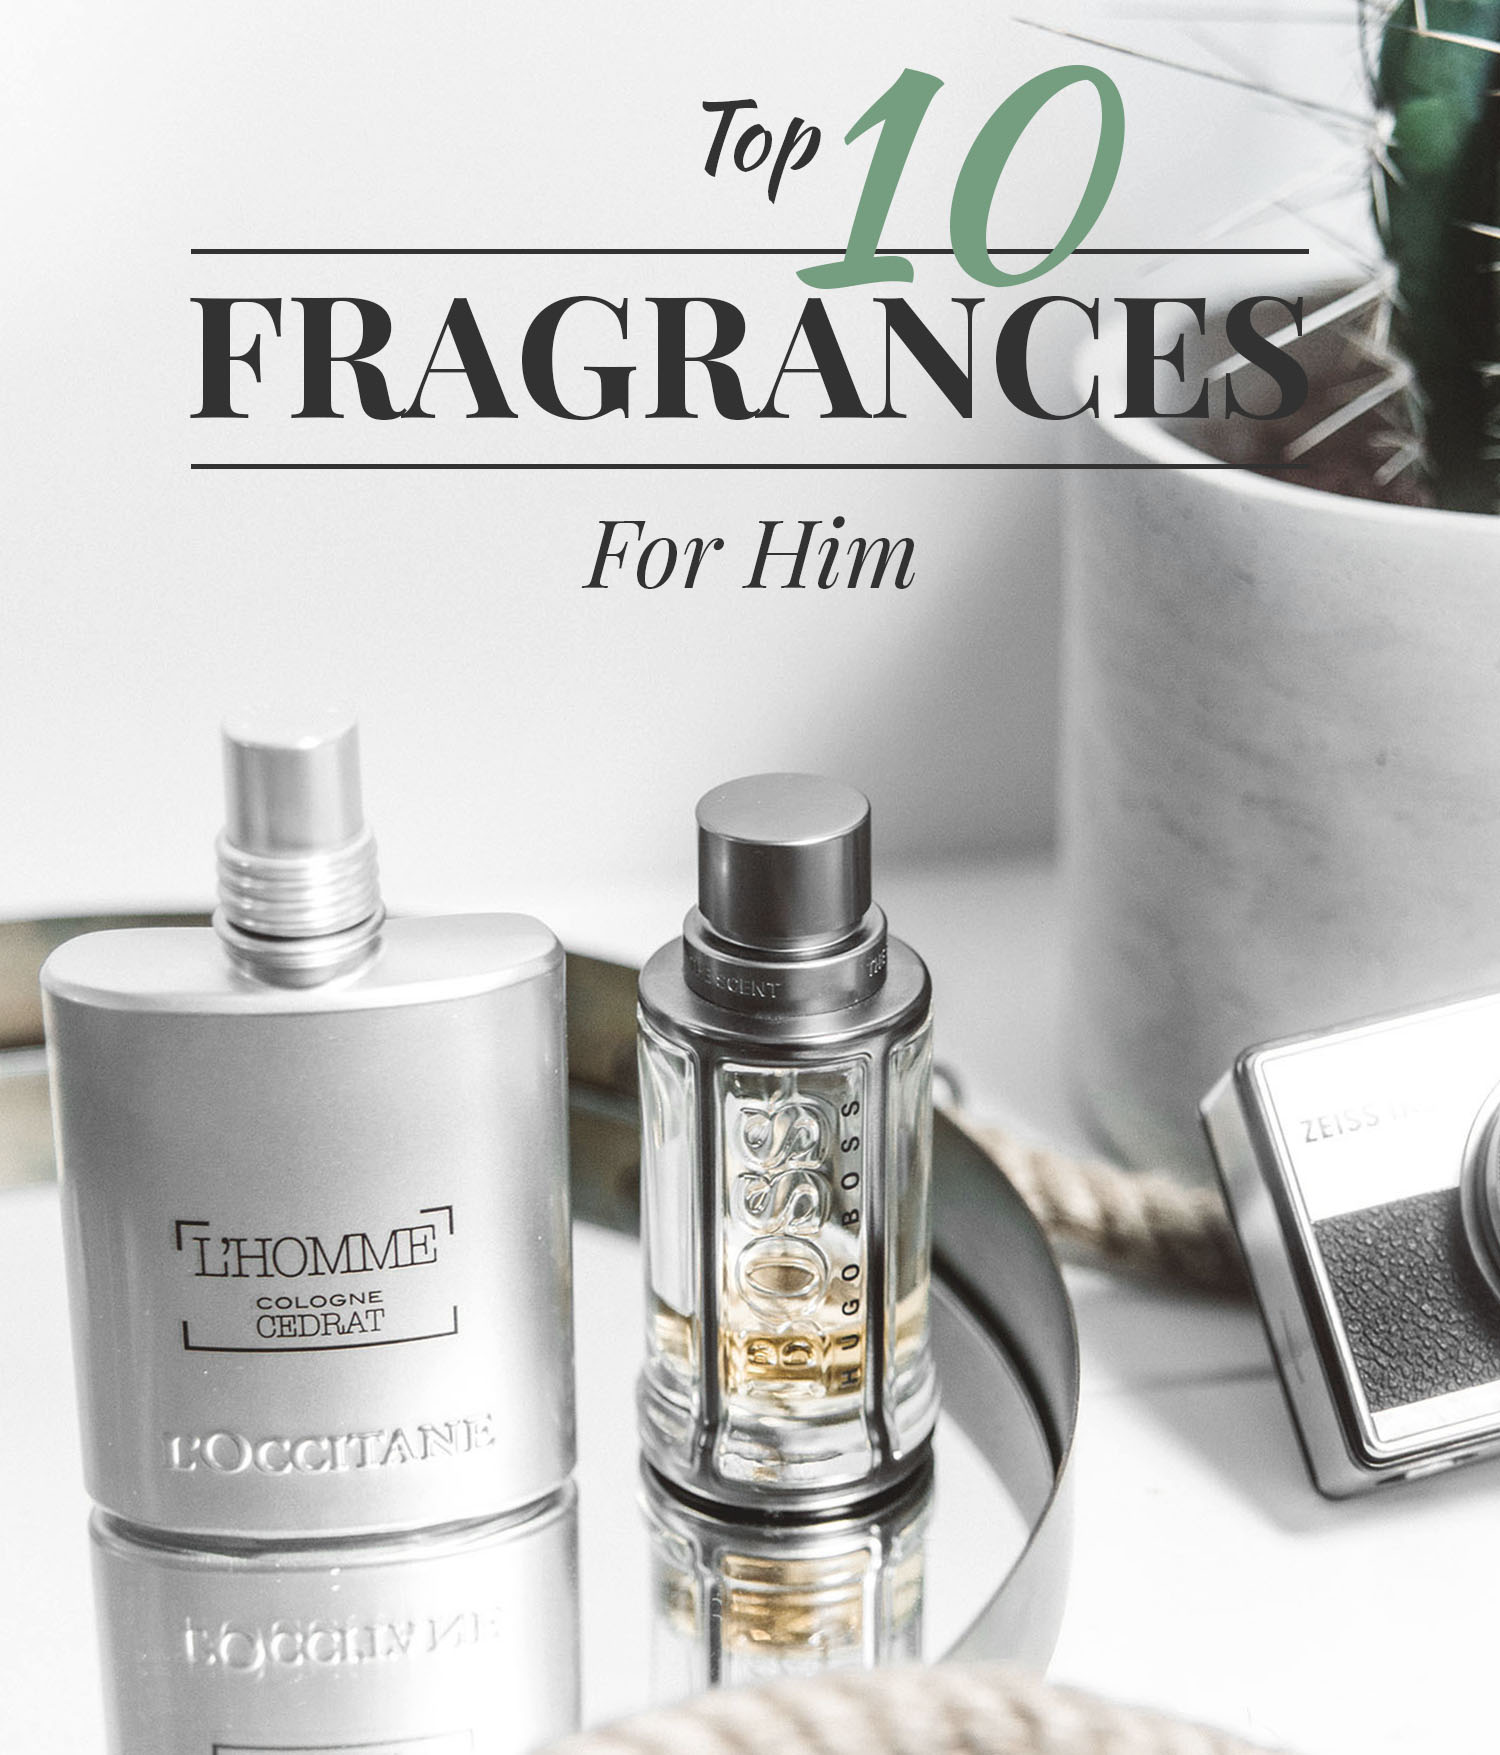 Your Favorite Perfume Cologne: The Best Perfumes For Men: My Top 10 List ⋆ ADARAS Blogazine